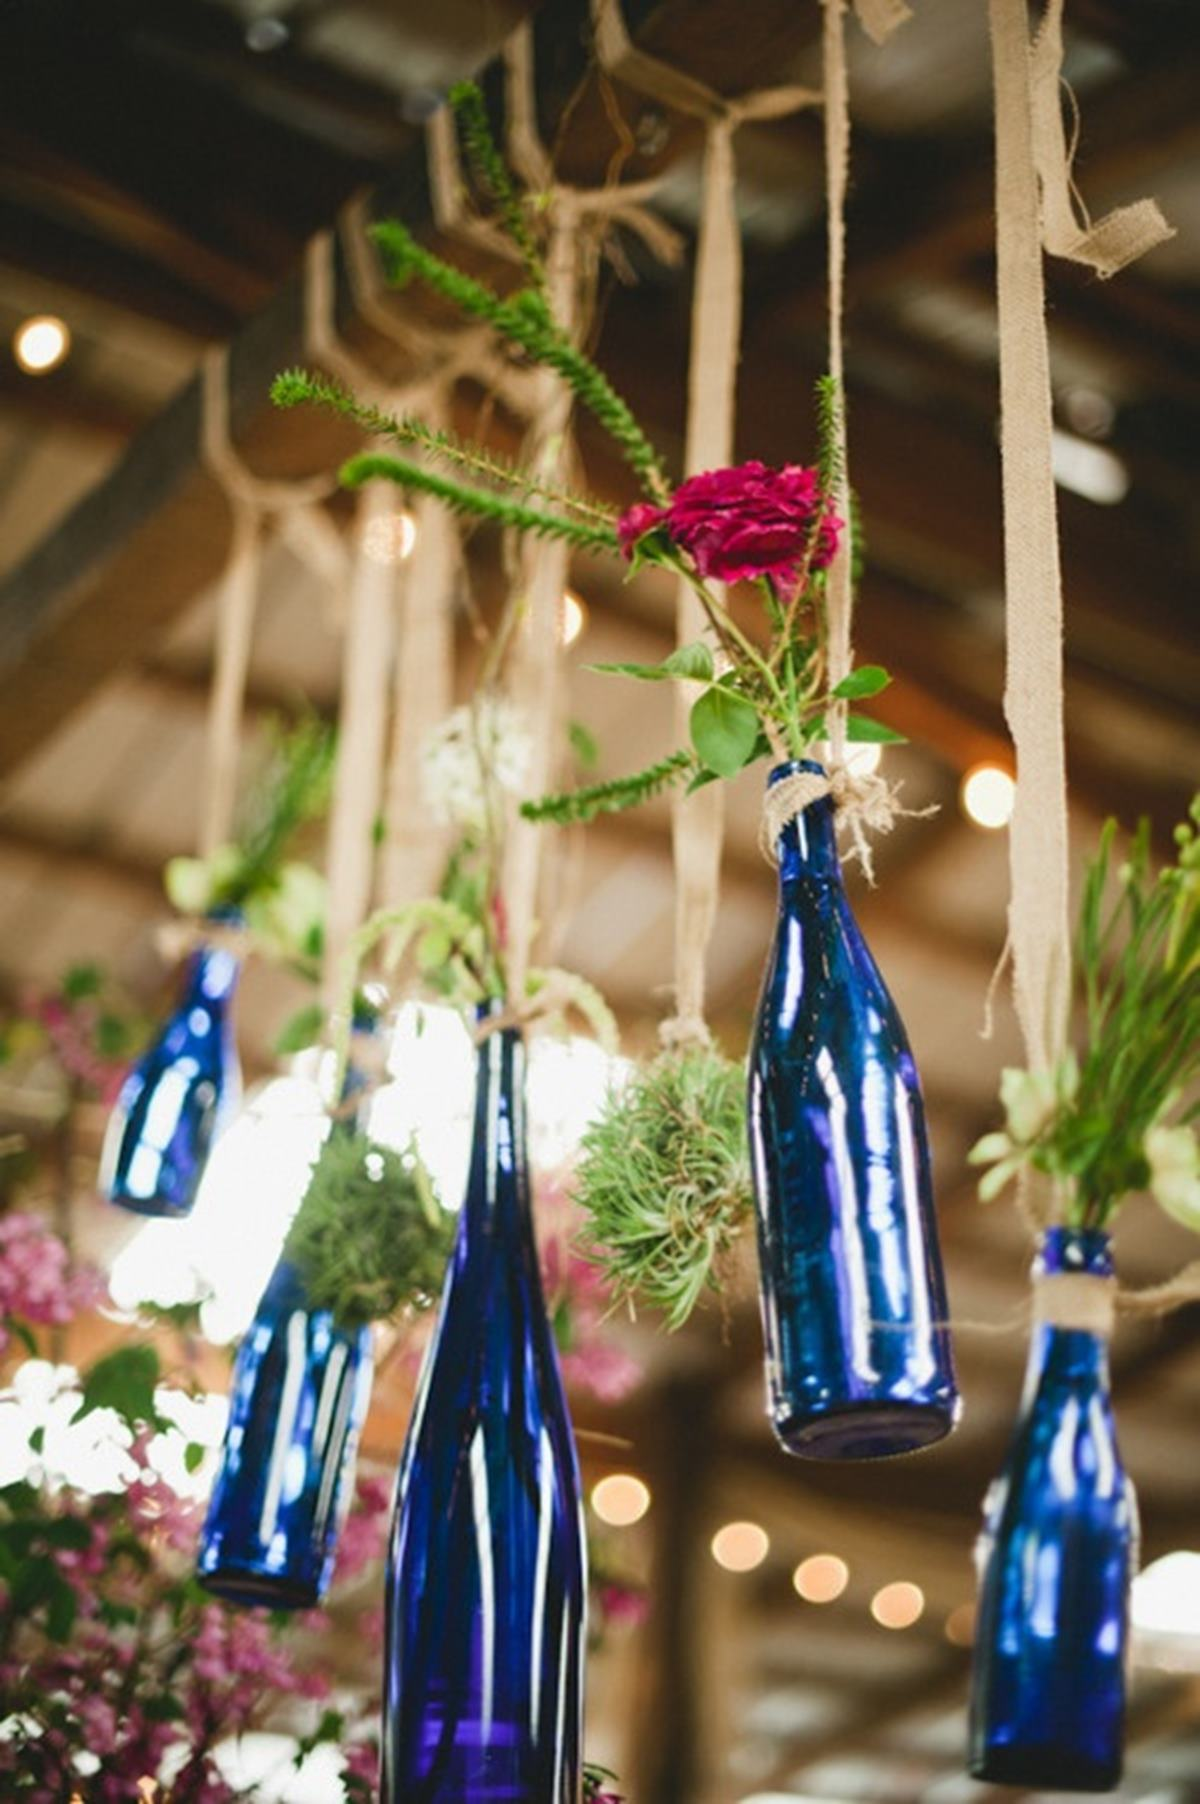 These blue bottle-vases